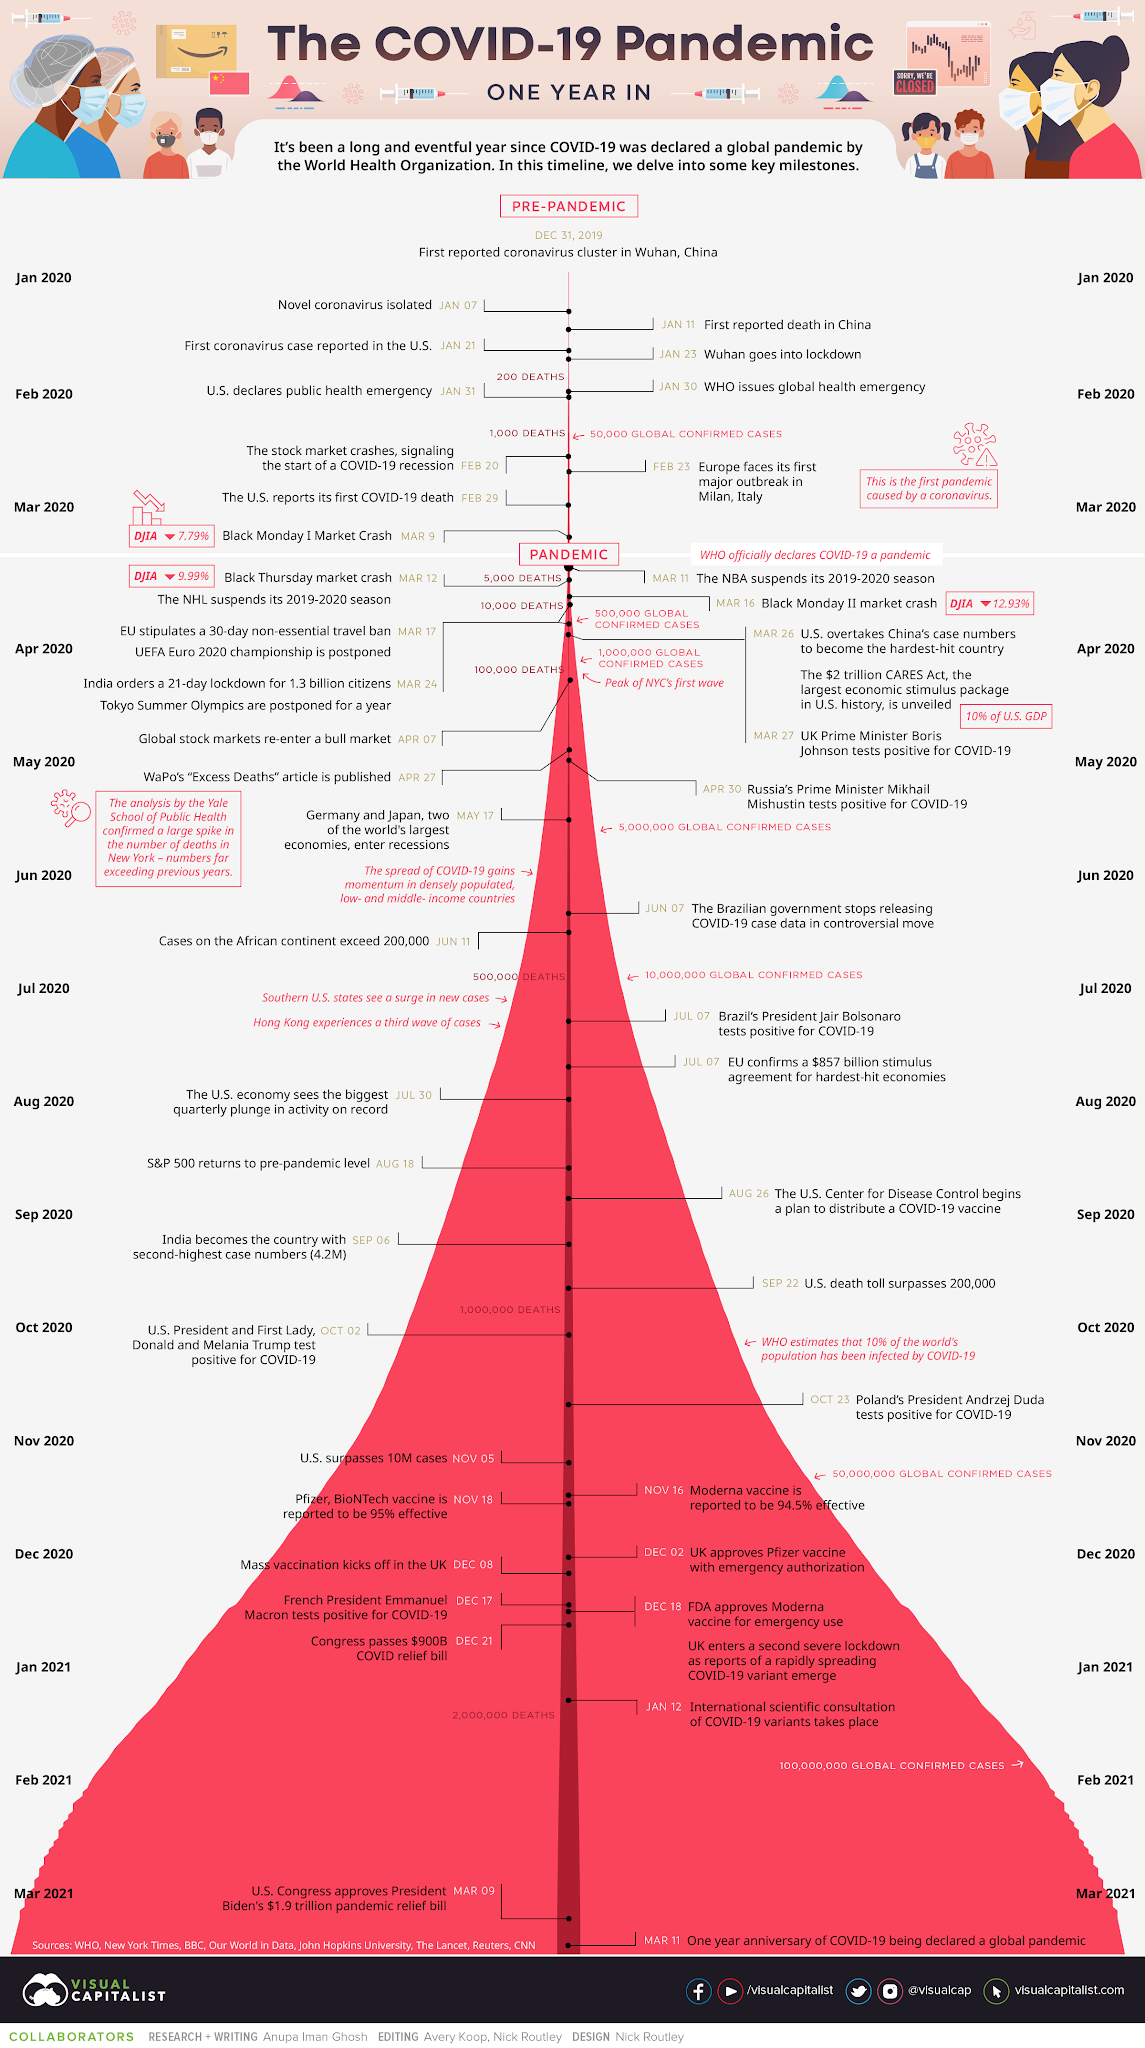 Visual Capitalist - Visualized: Key Events in the COVID-19 Timeline